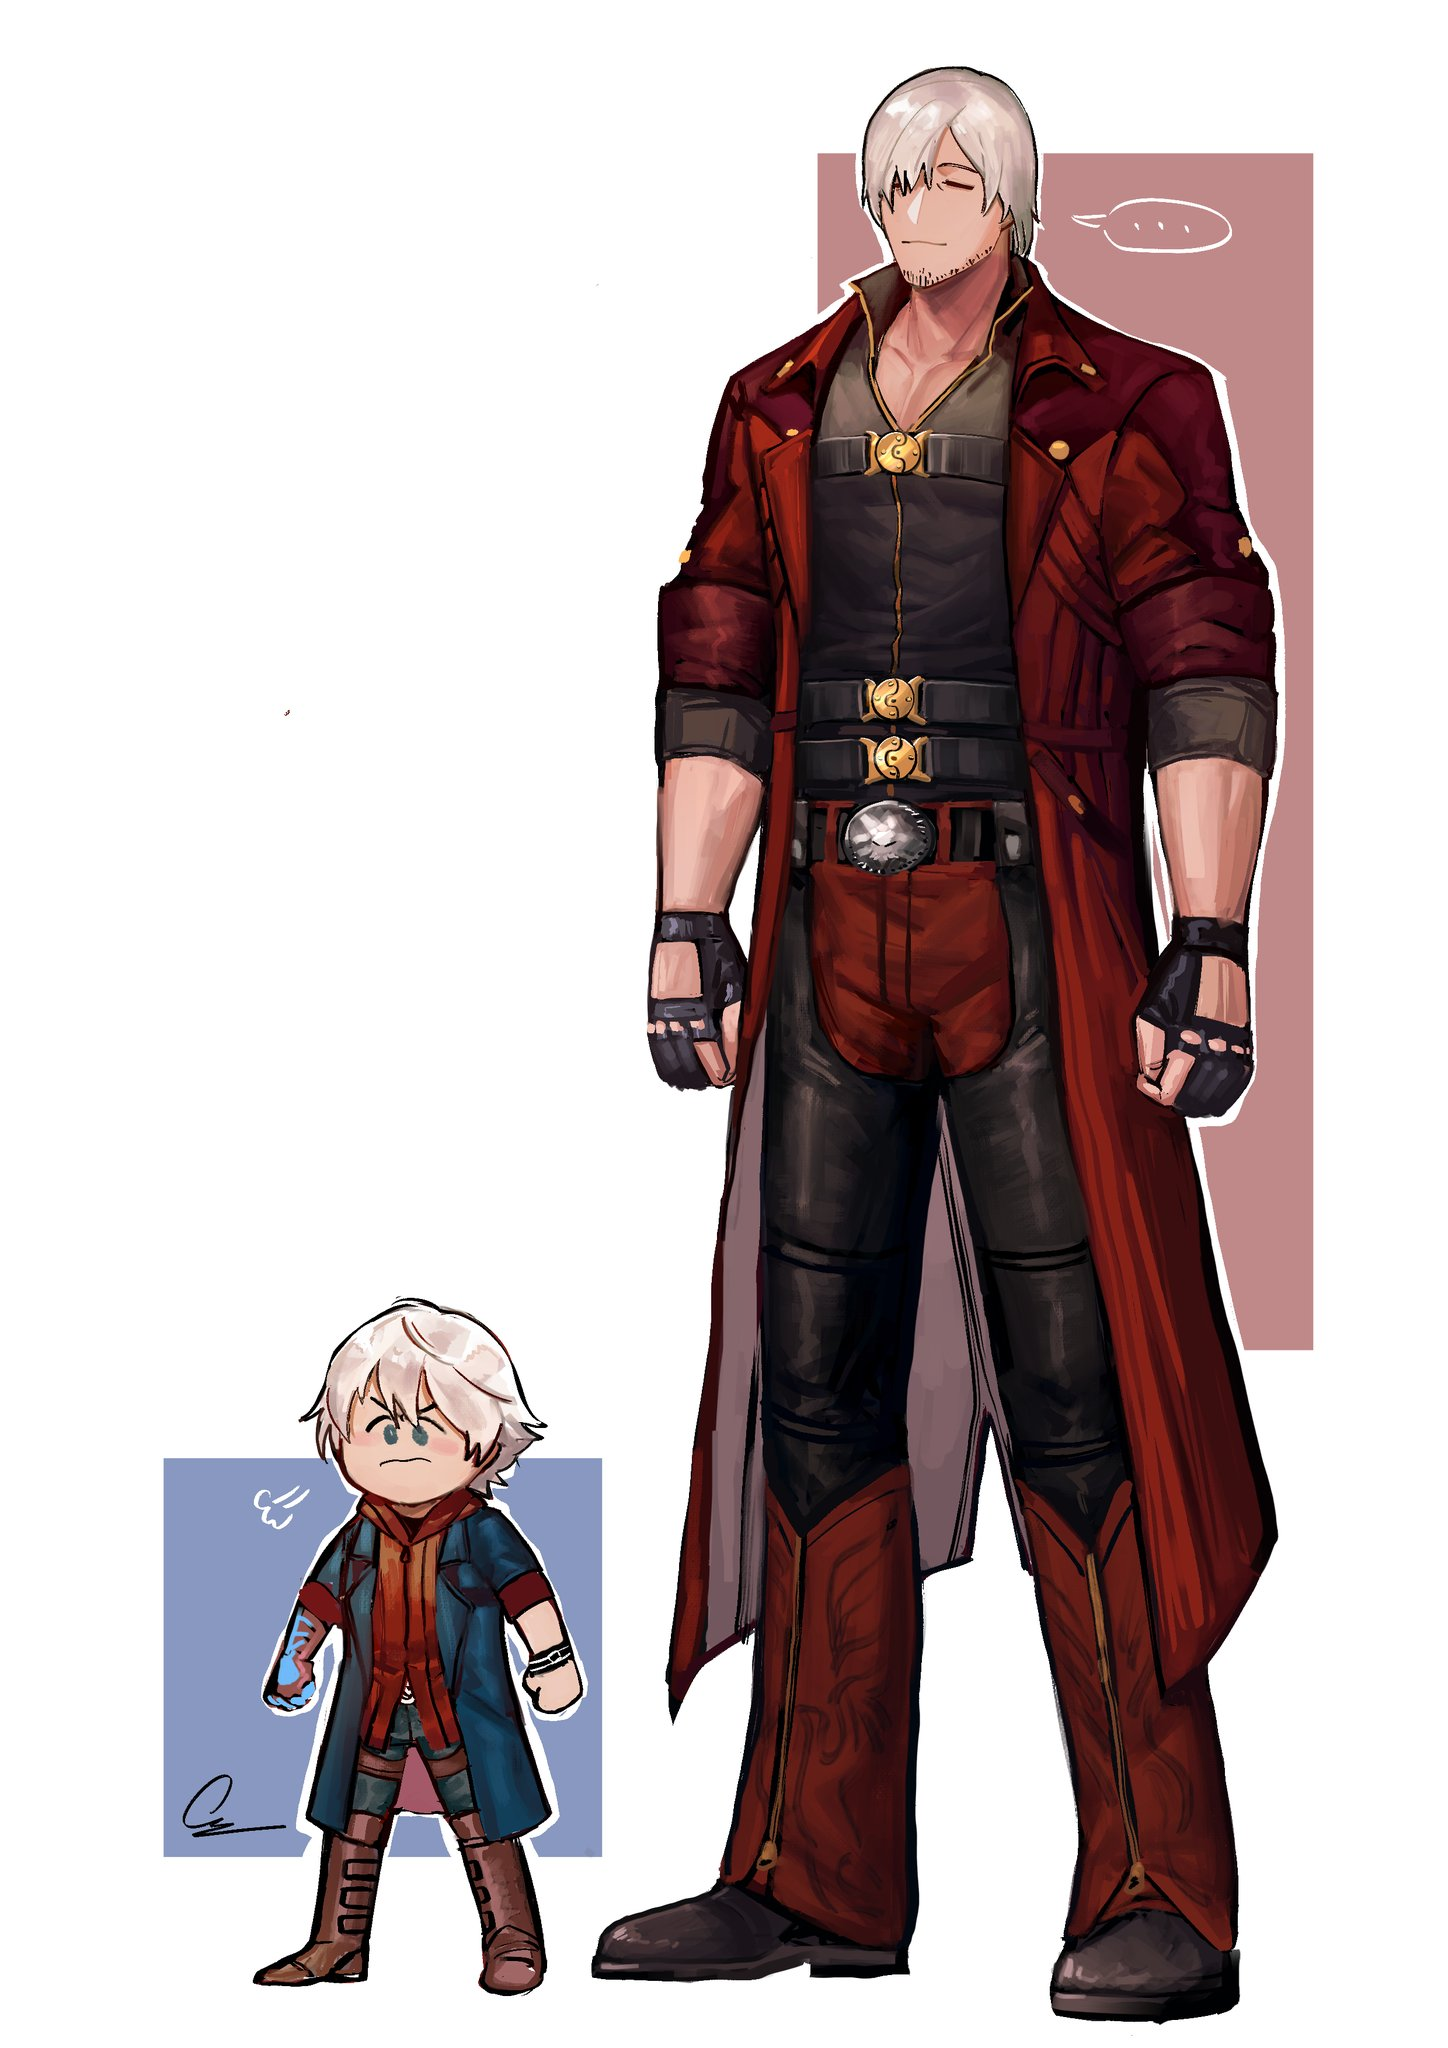 dante and small nero